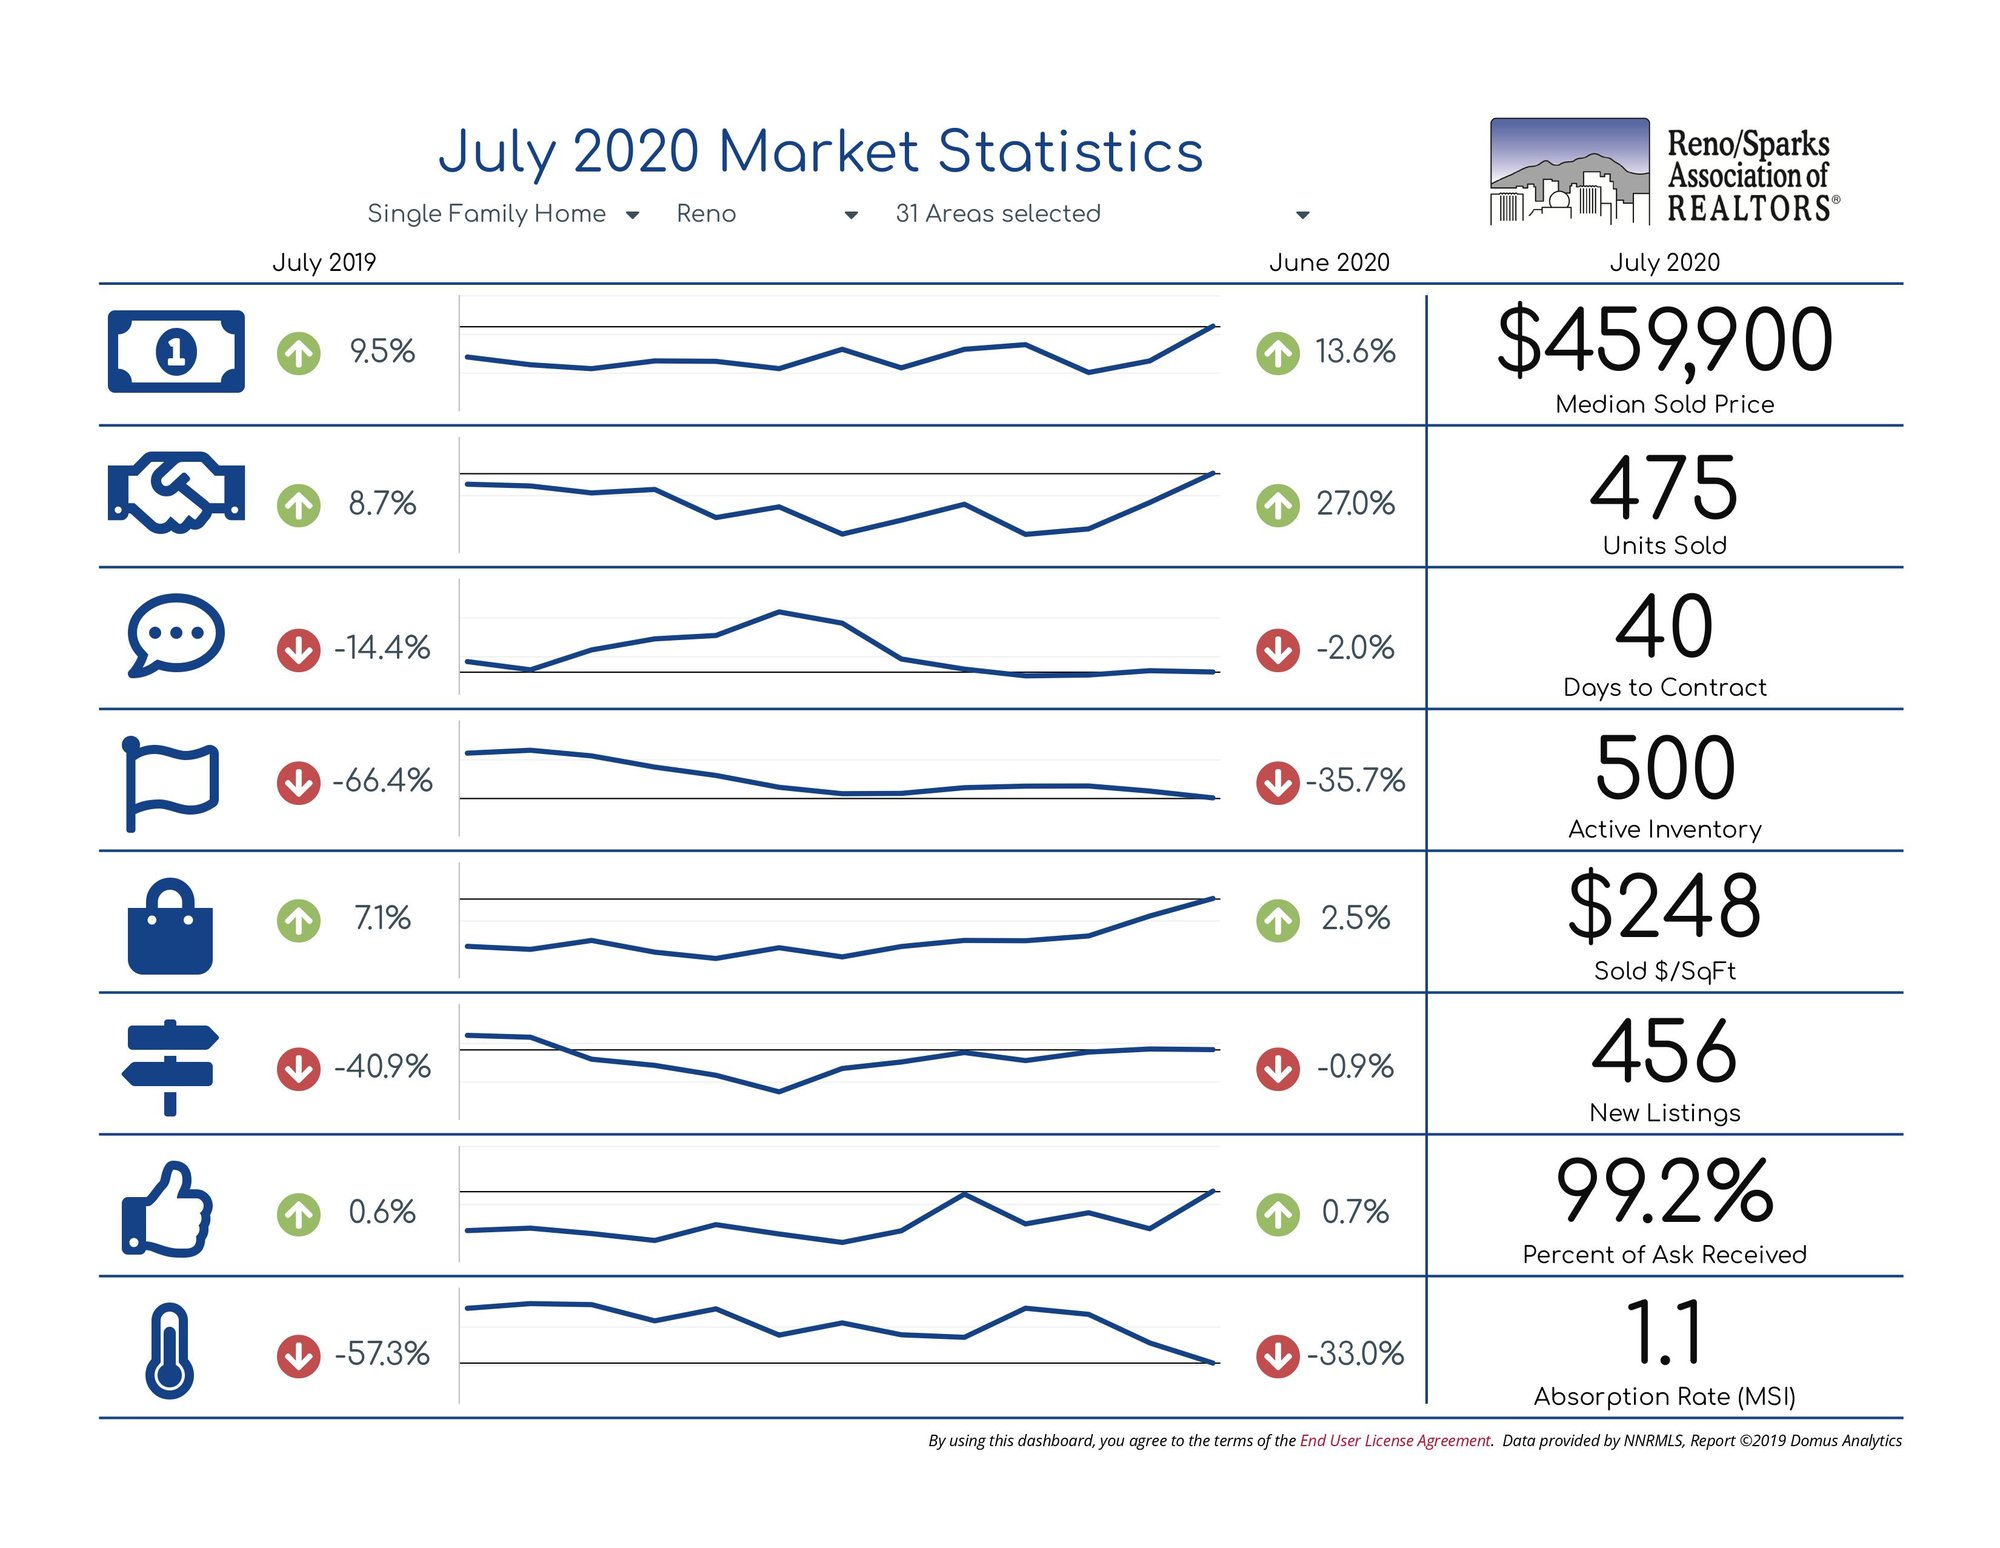 Reno Single Family Home Statistics